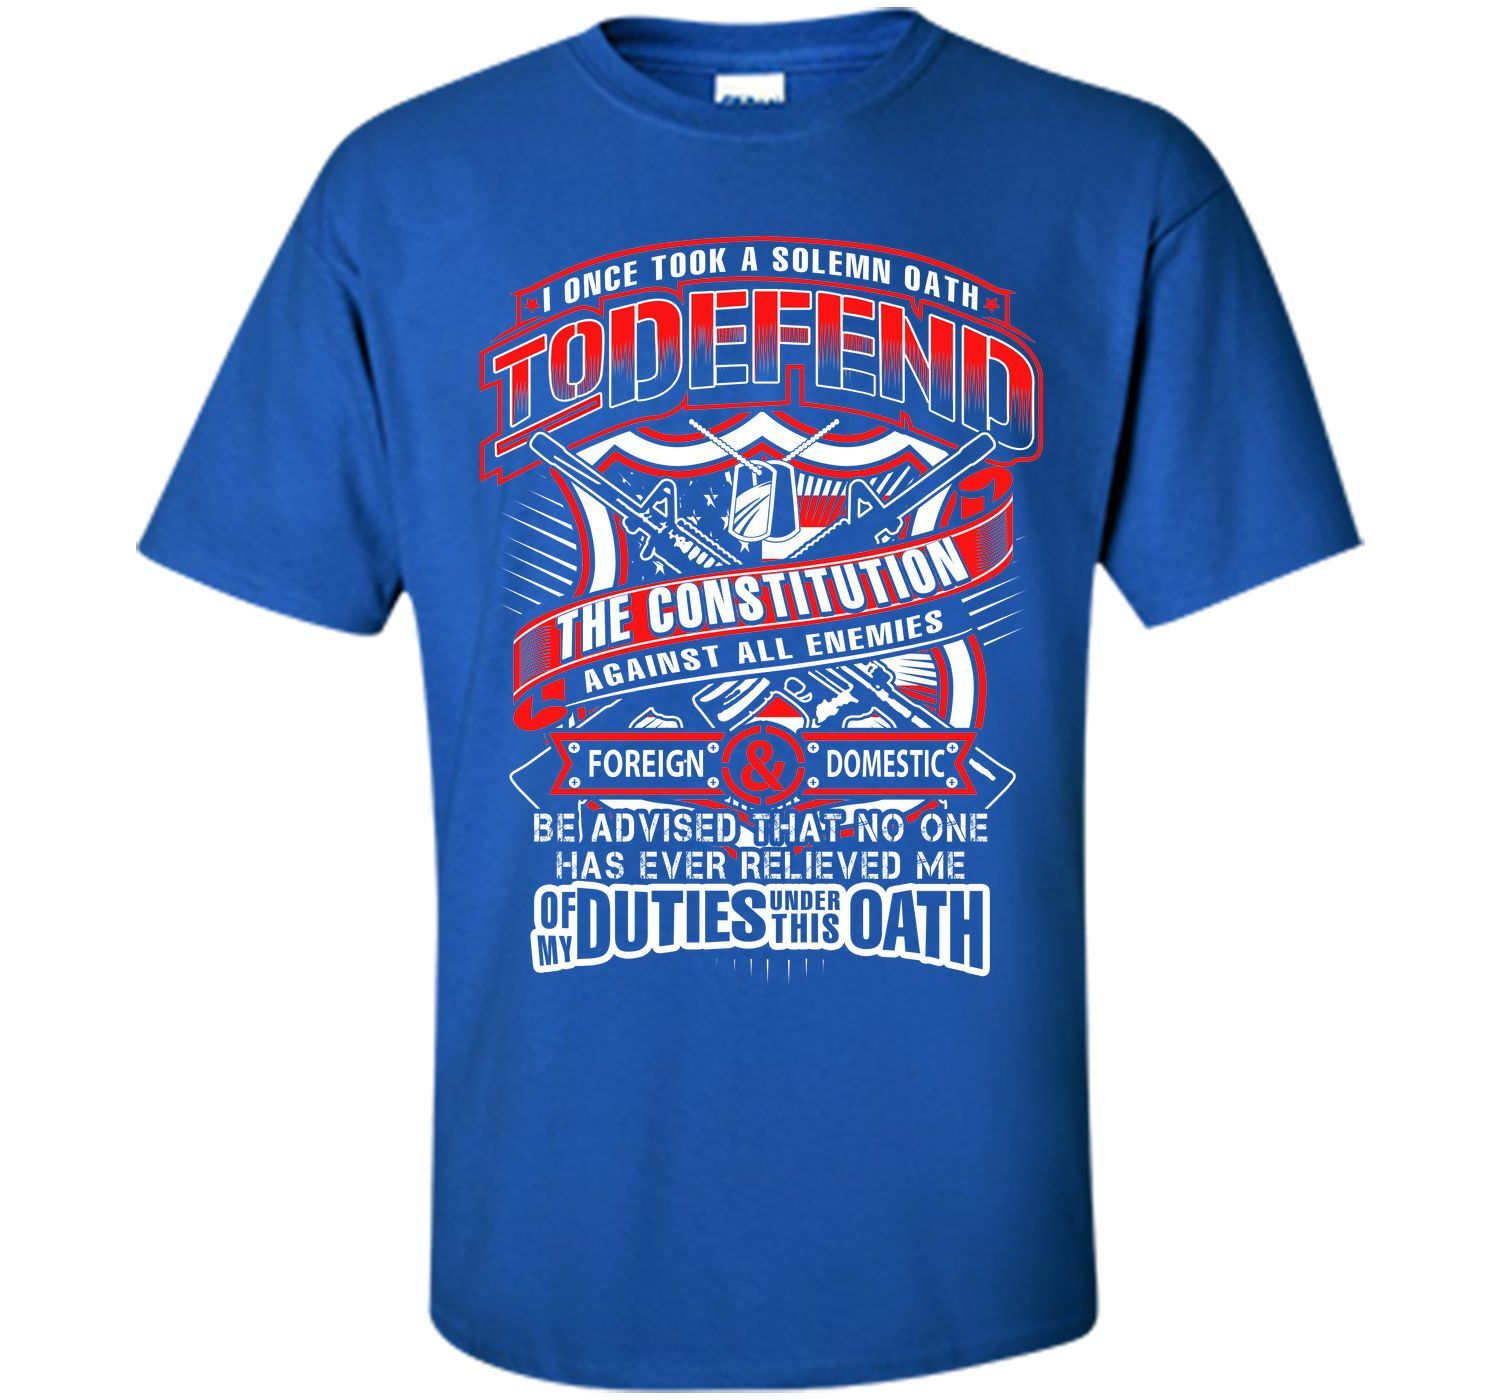 I ONCE TOOK A SOLEMN OATH To Defend T-Shirt